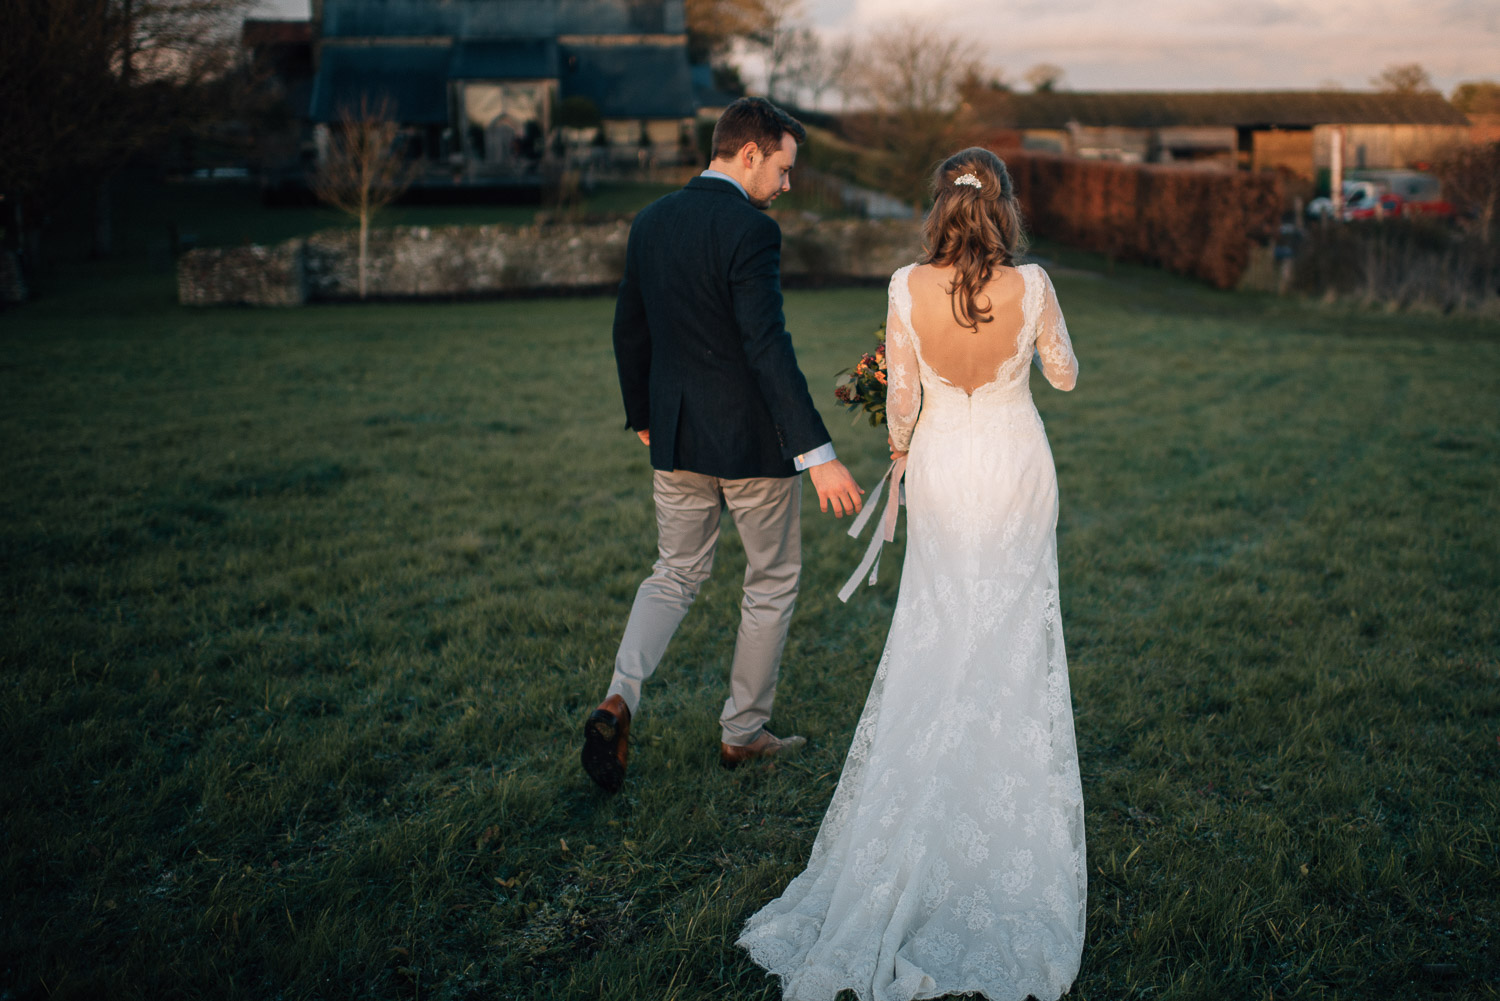 golden hour portraits at cripps barn by creative and alternative london wedding photographer the shannons photography